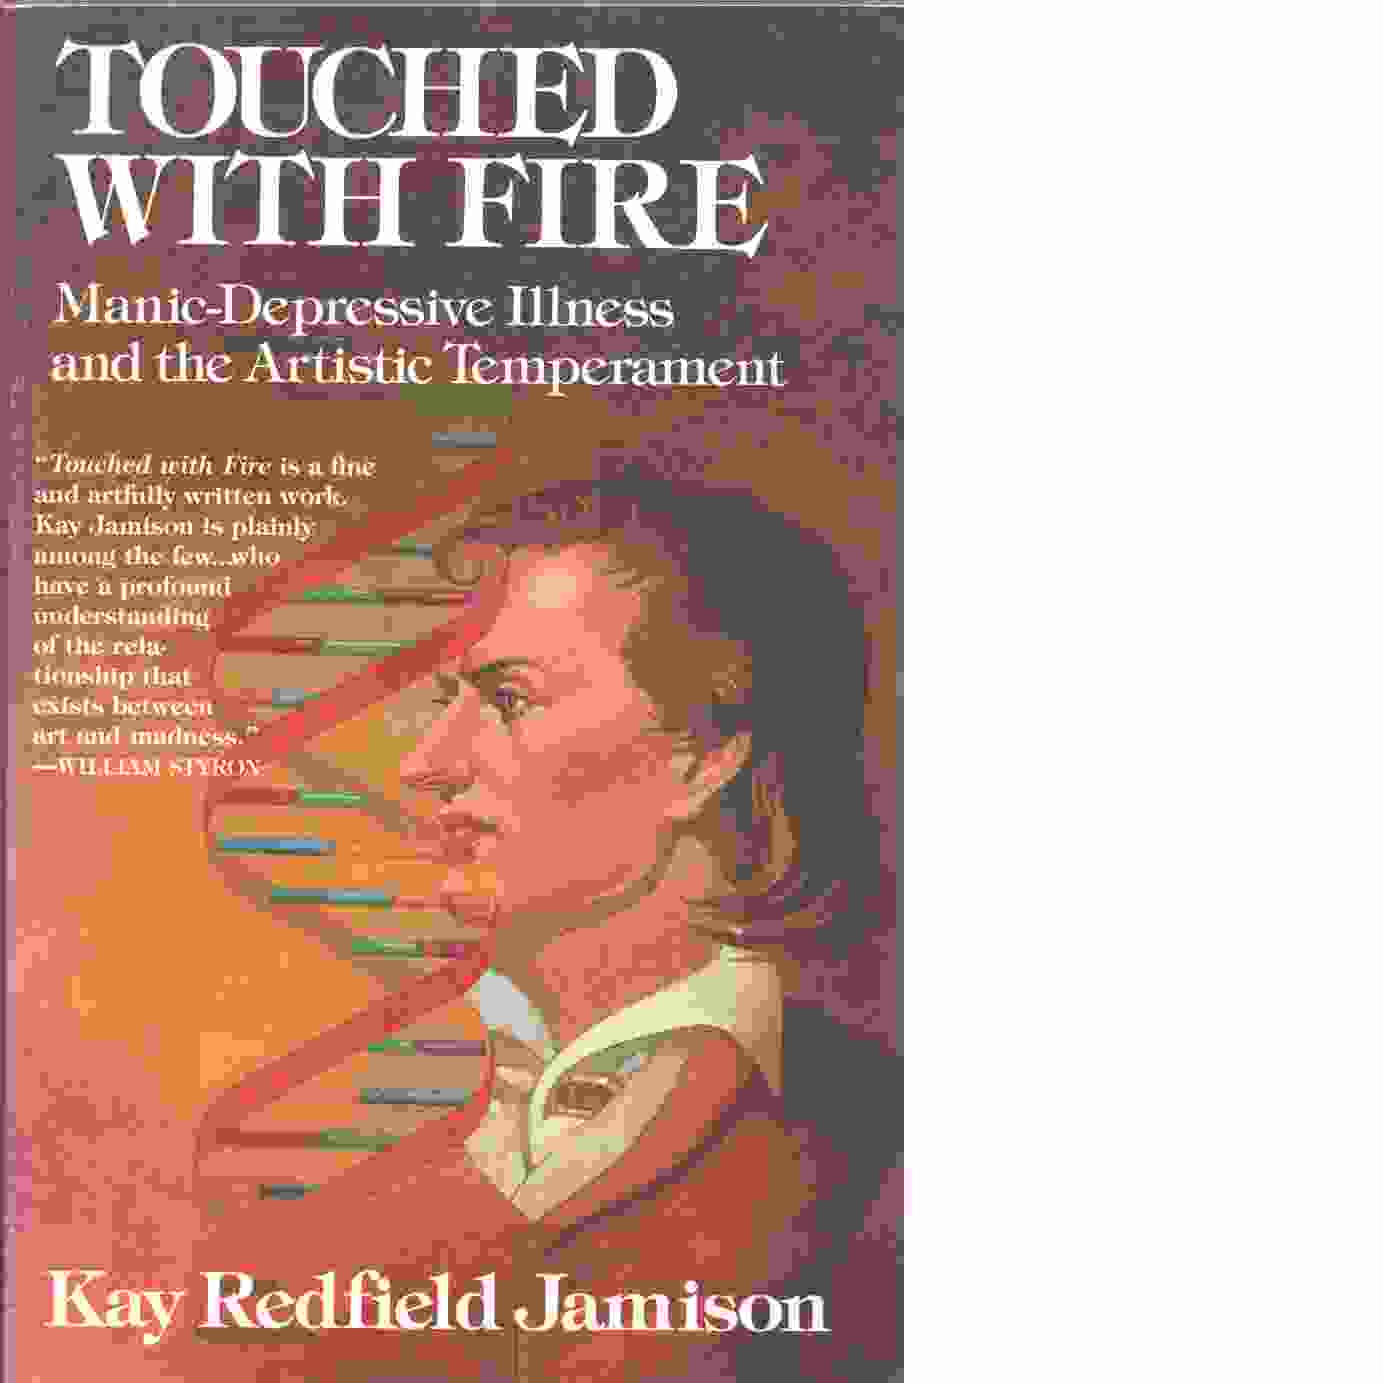 Touched with fire : manic-depressive illness and the artistic temperament - Jamison, Kay R.